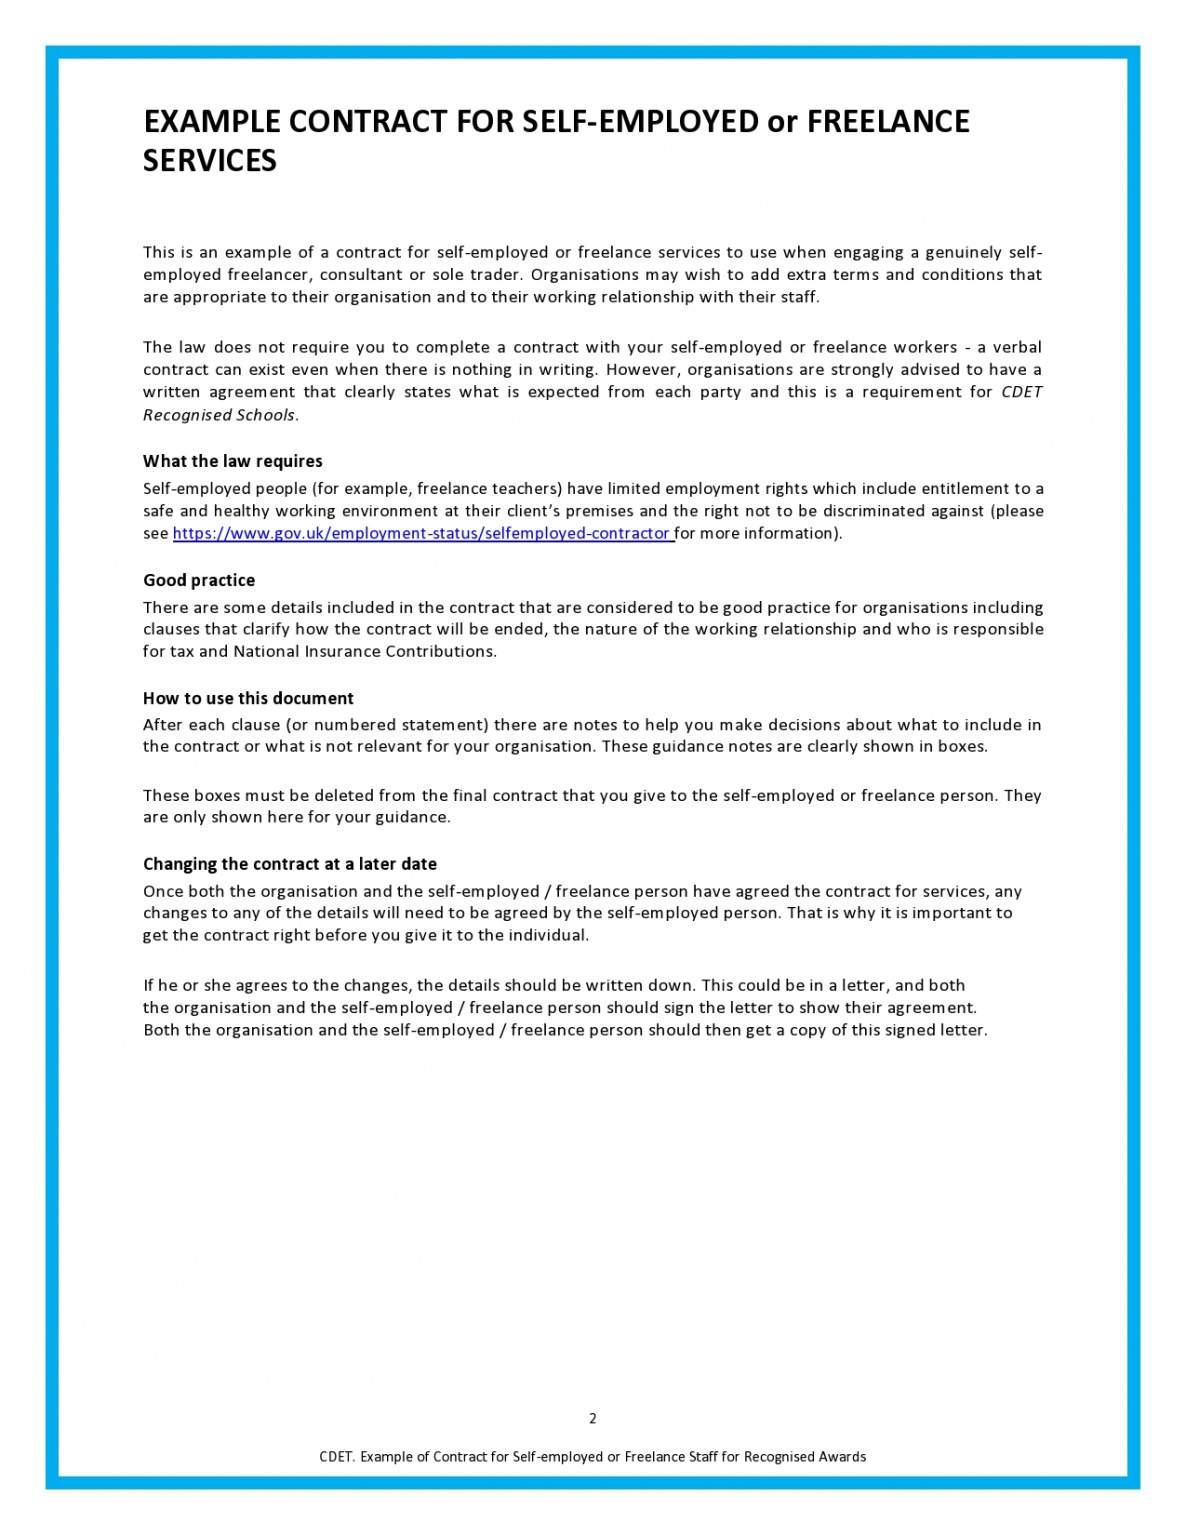 Adobe pdf, microsoft word (.docx), or open document text (.odt). Self Employment Contract Sample Employment Ihtf